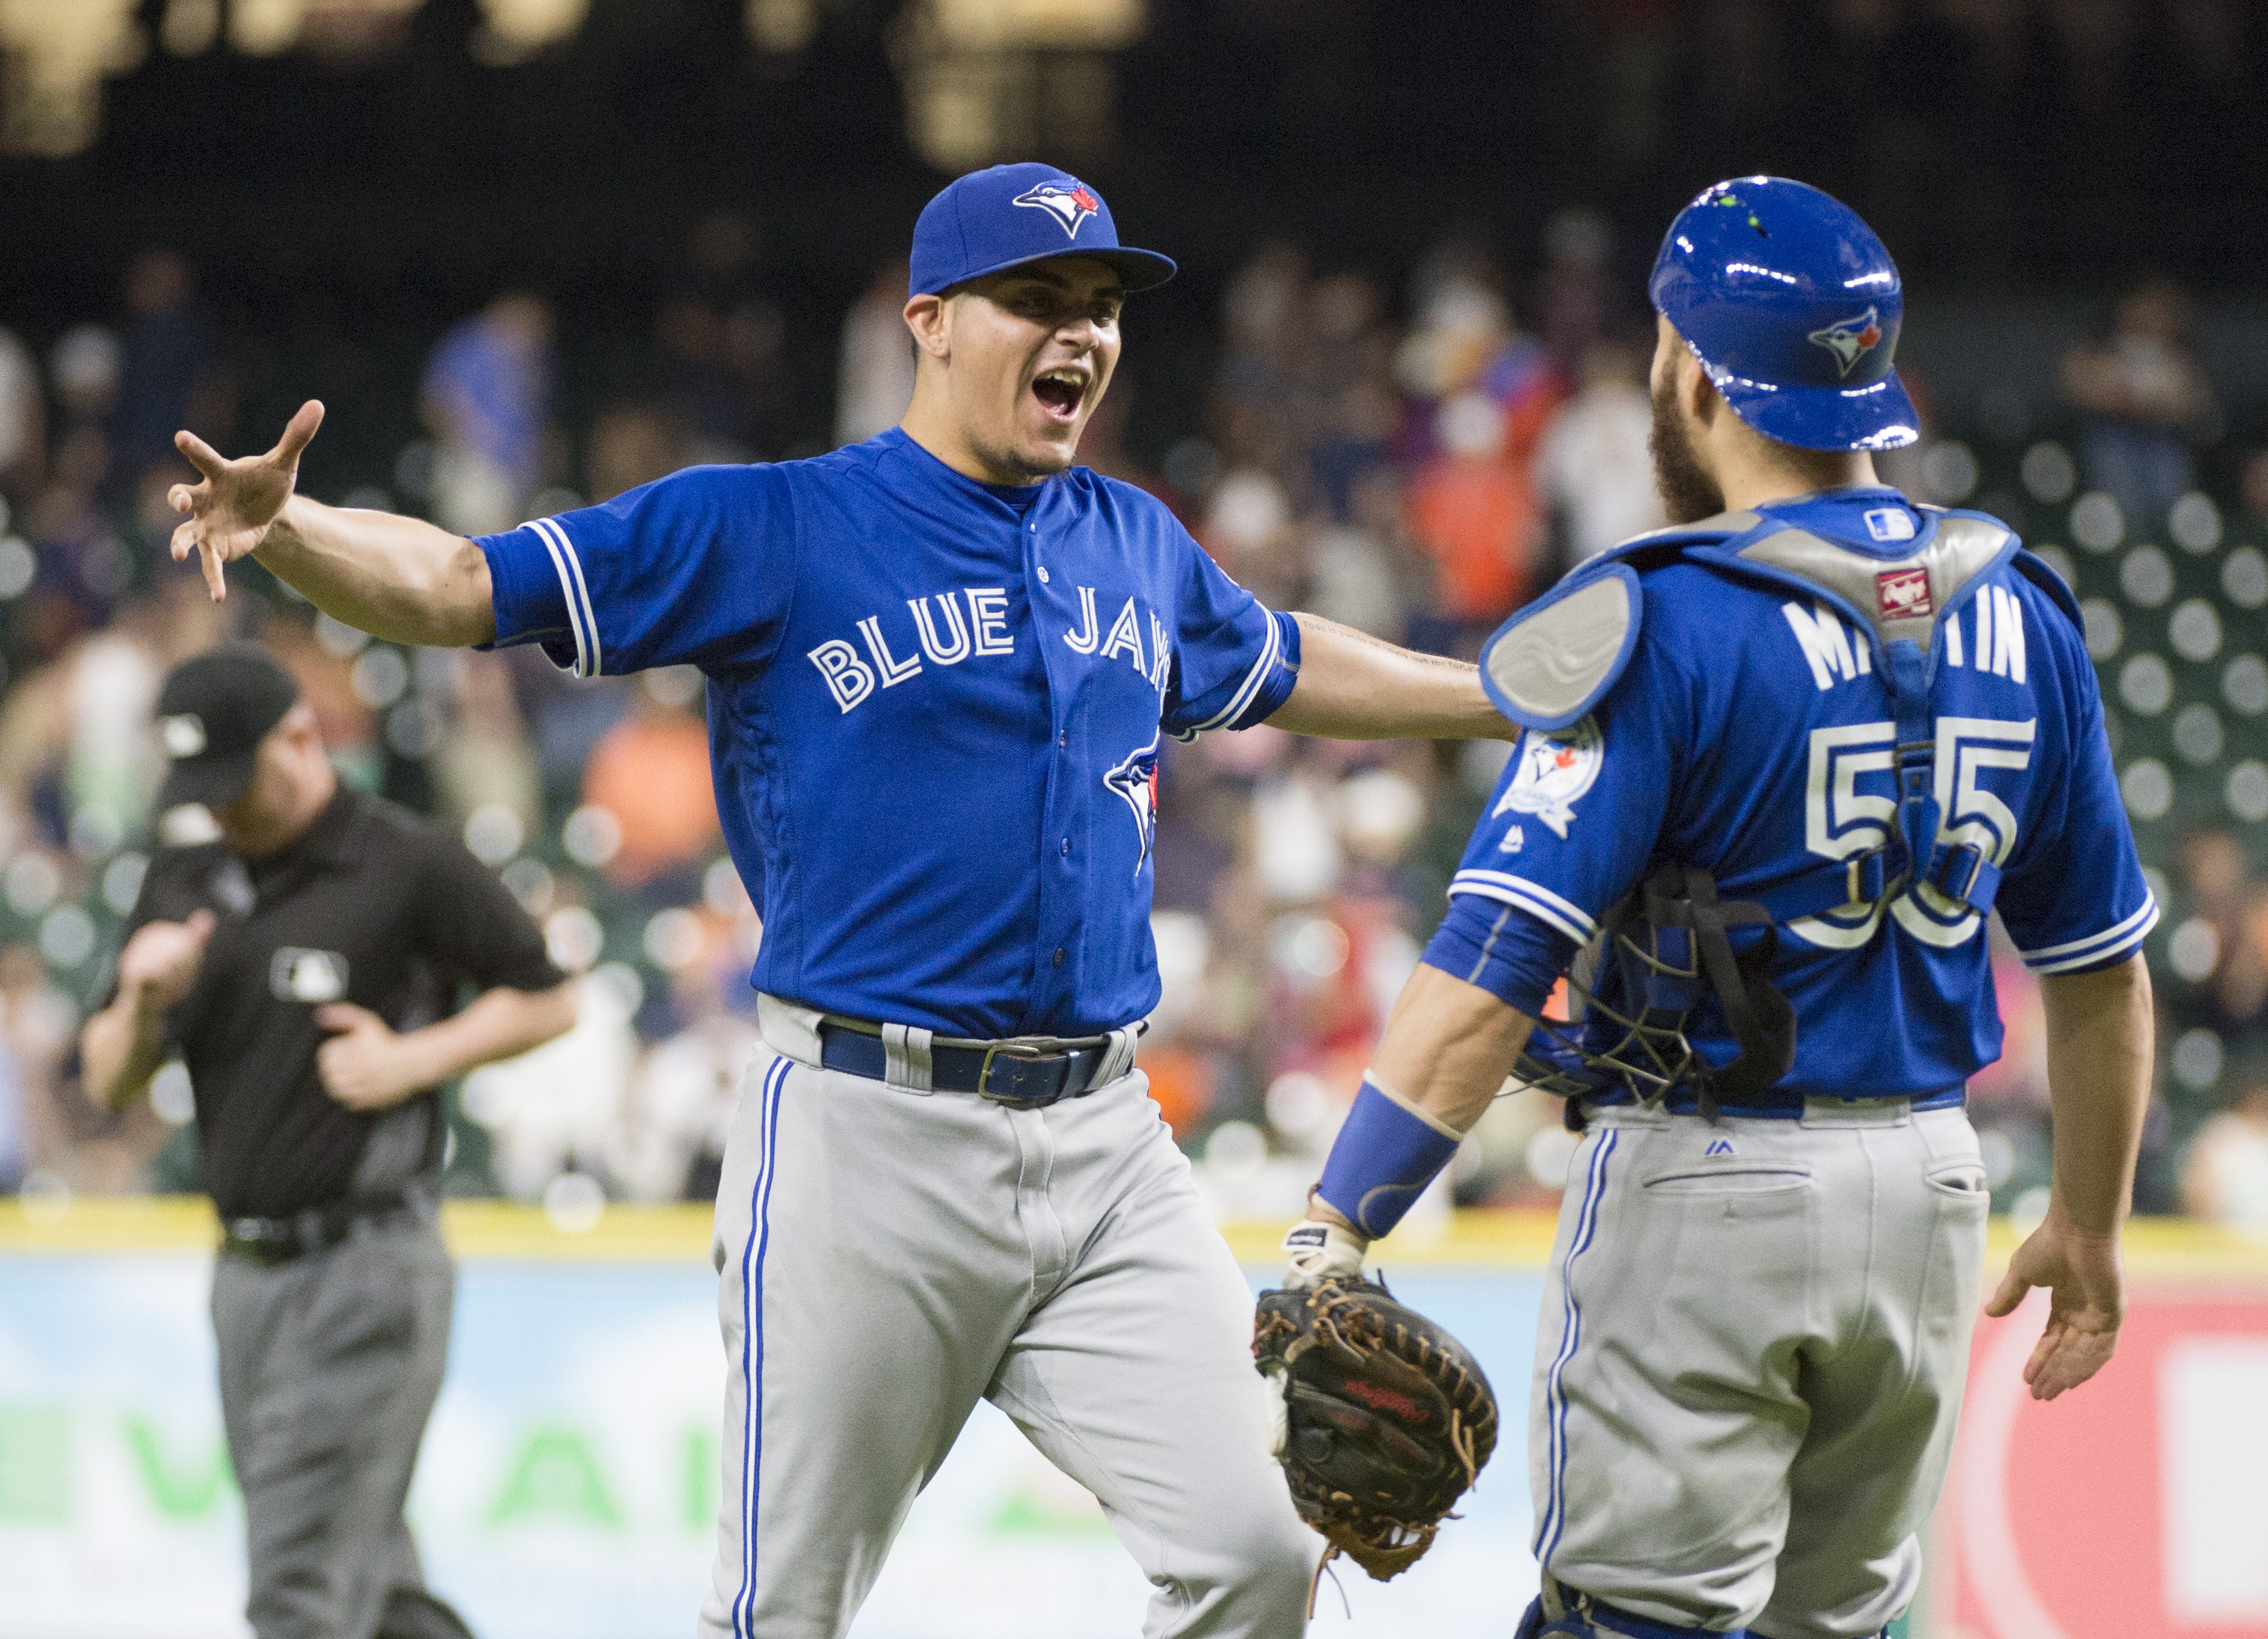 Toronto Blue Jays relief pitcher Roberto Osuna, left, celebrates with catcher Russell Martin a baseball game against the Houston Astros on Thursday, Aug. 4, 2016, in Houston. The Blue Jays won 4-1. (AP Photo/George Bridges)